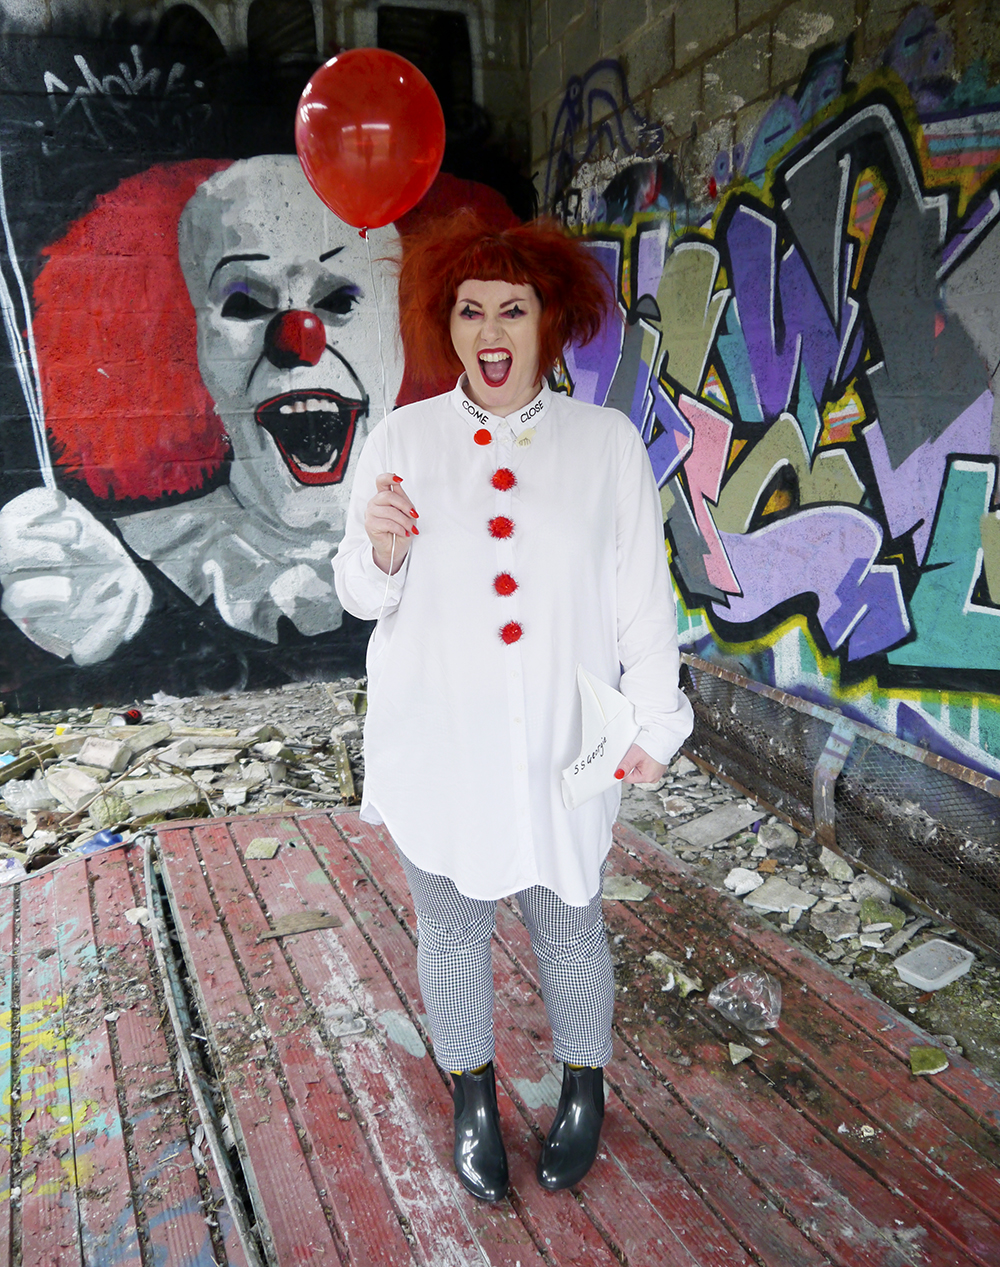 Creepy clown outfit inspired by Pennywise the dancing clown from IT